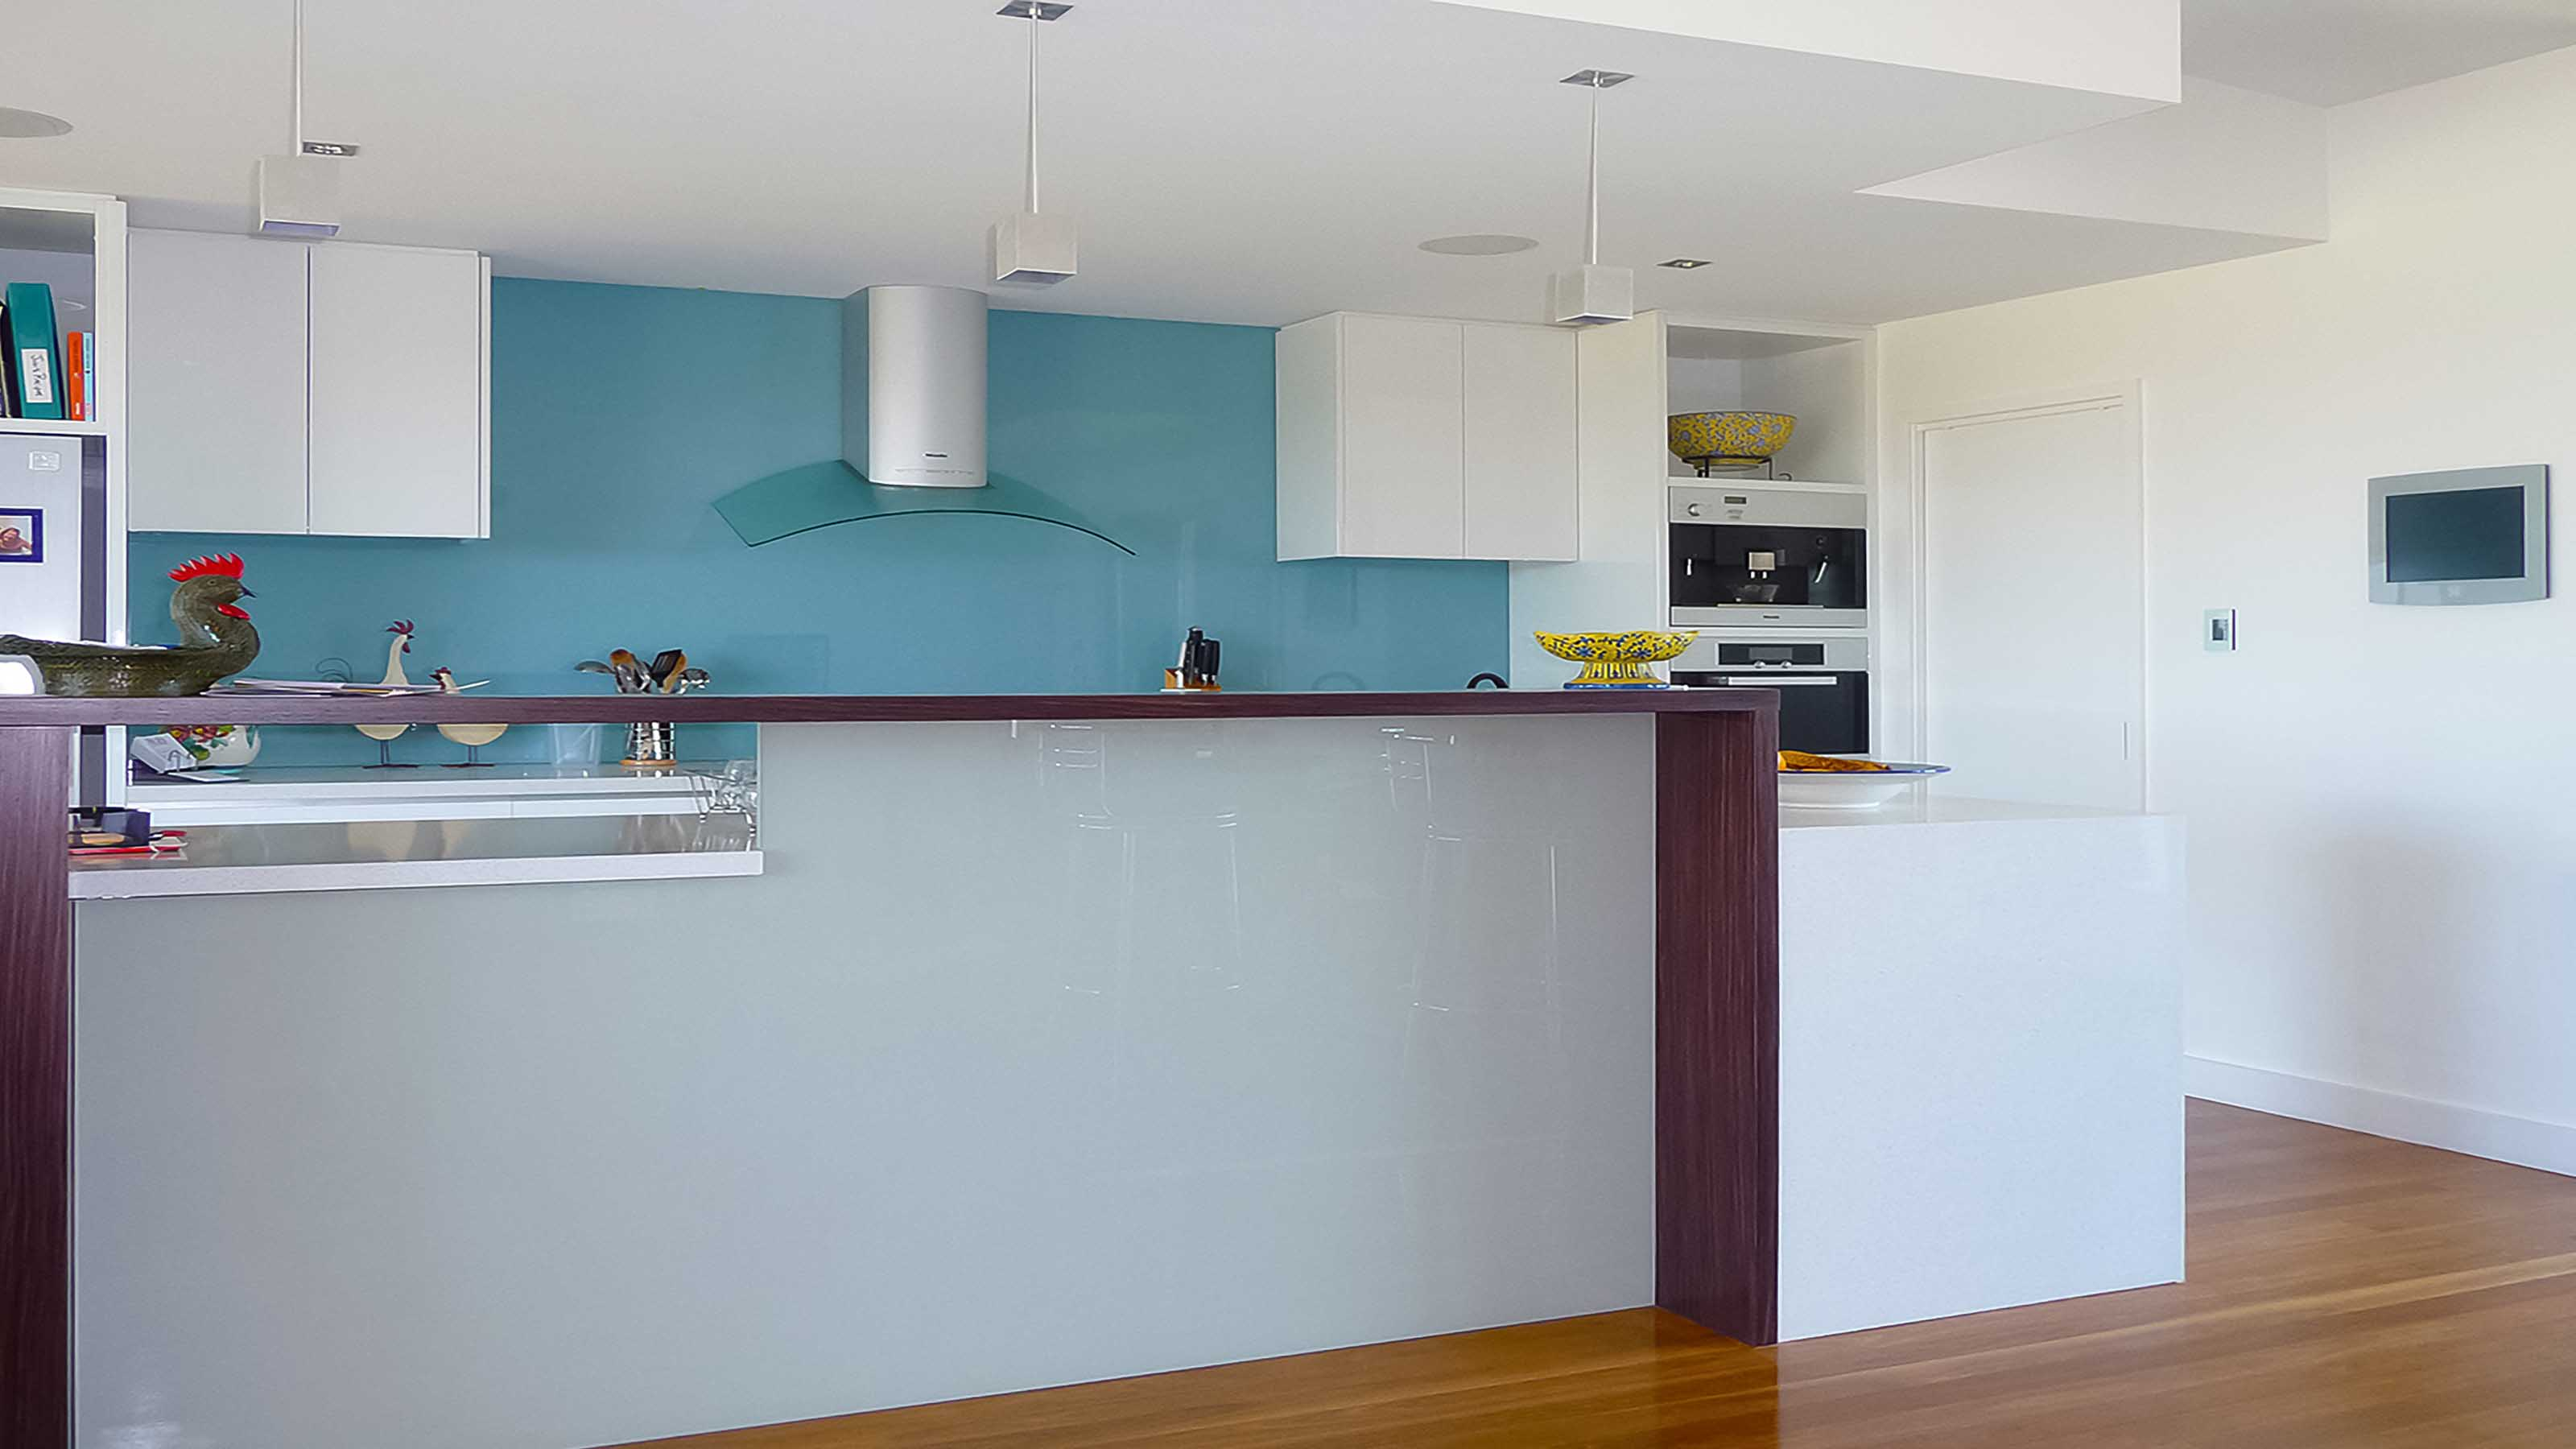 KOLOR™ - KITCHEN GLASS SPLASHBACKS - BLUE & LIGHT GREY - Supplied & Installed by - geelongsplashbacks.com.au